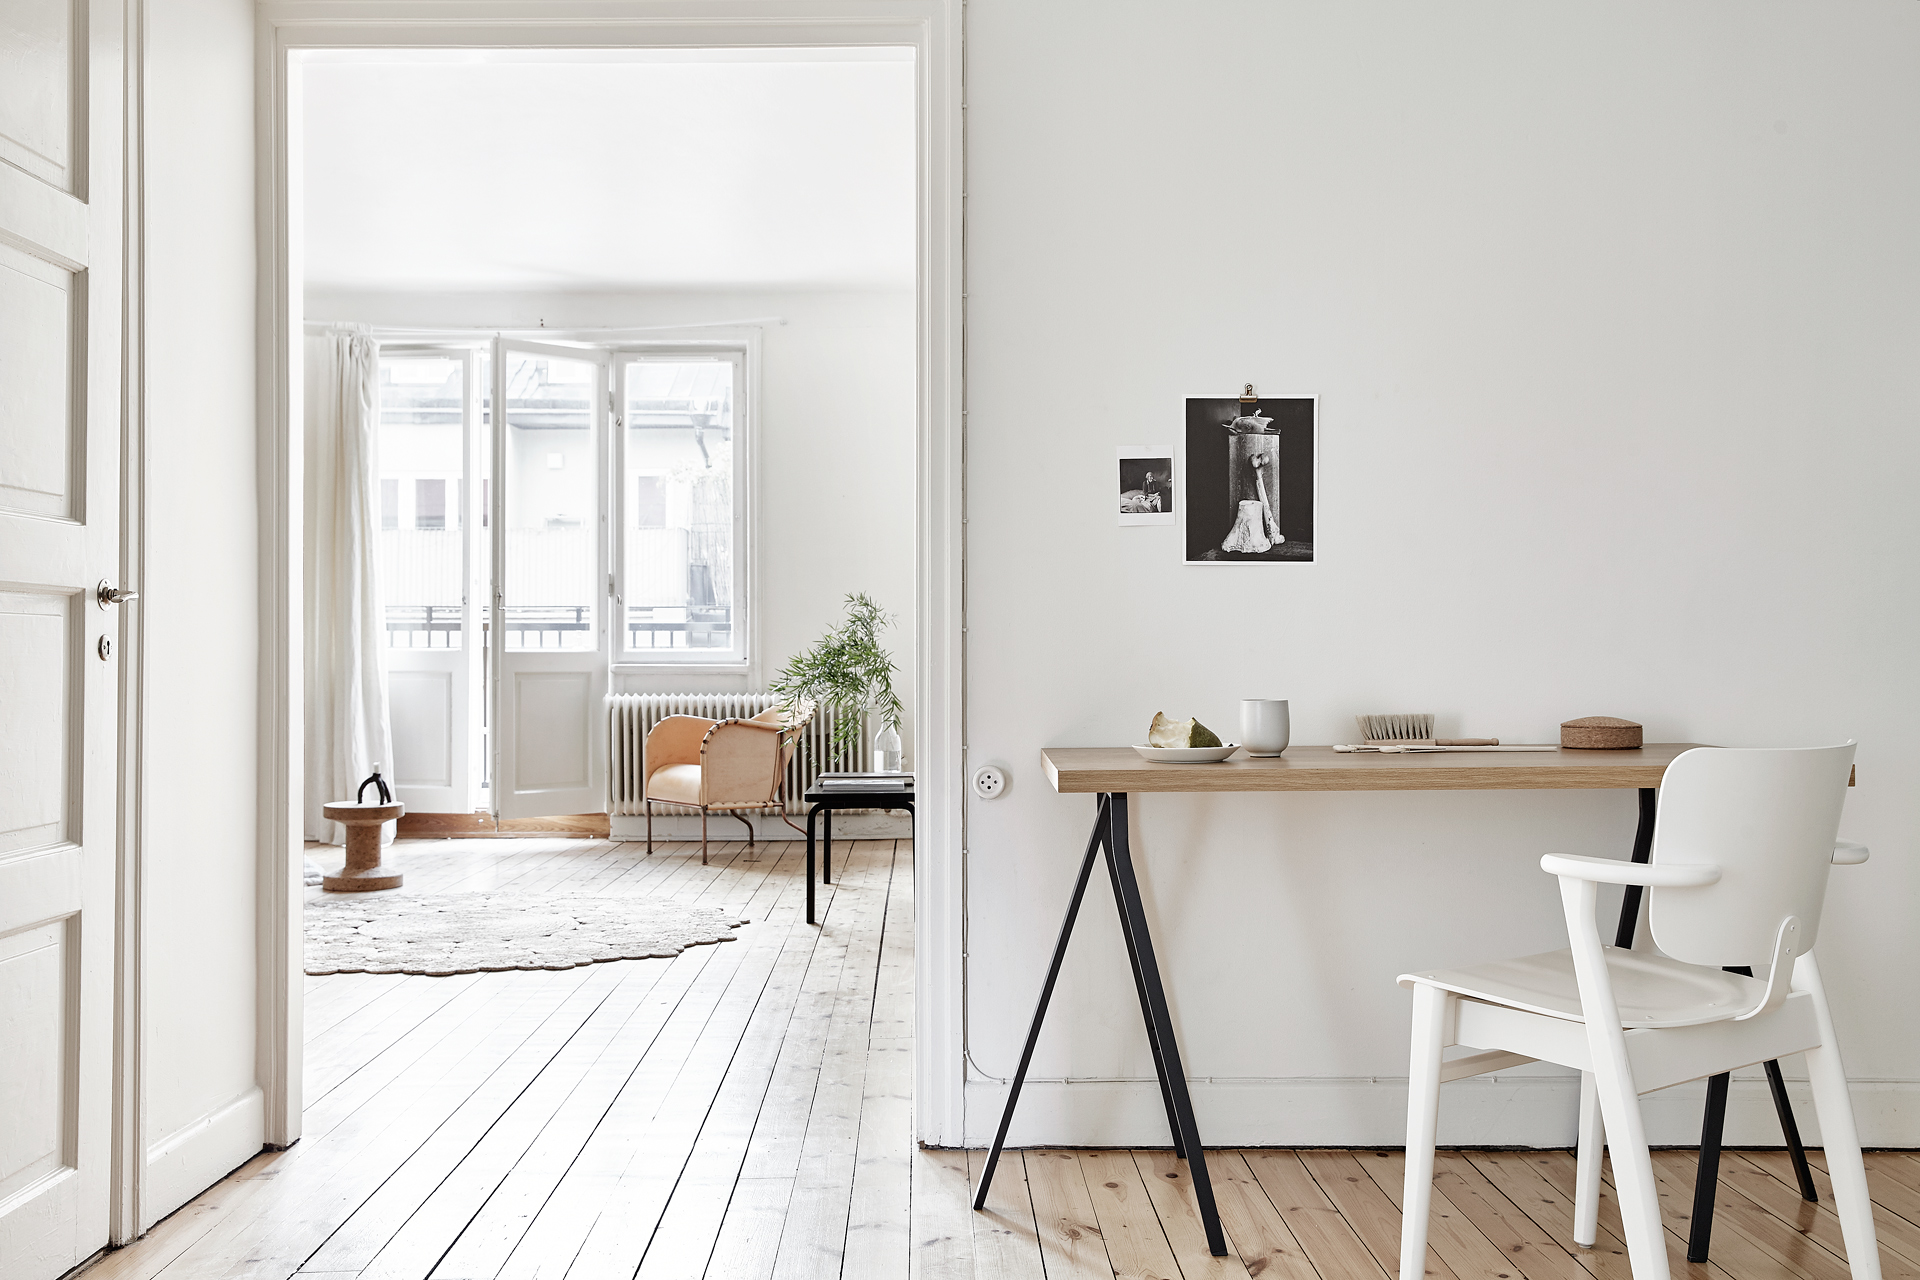 Artek chair 68. alvar aalto furniture group picture image by tag ...